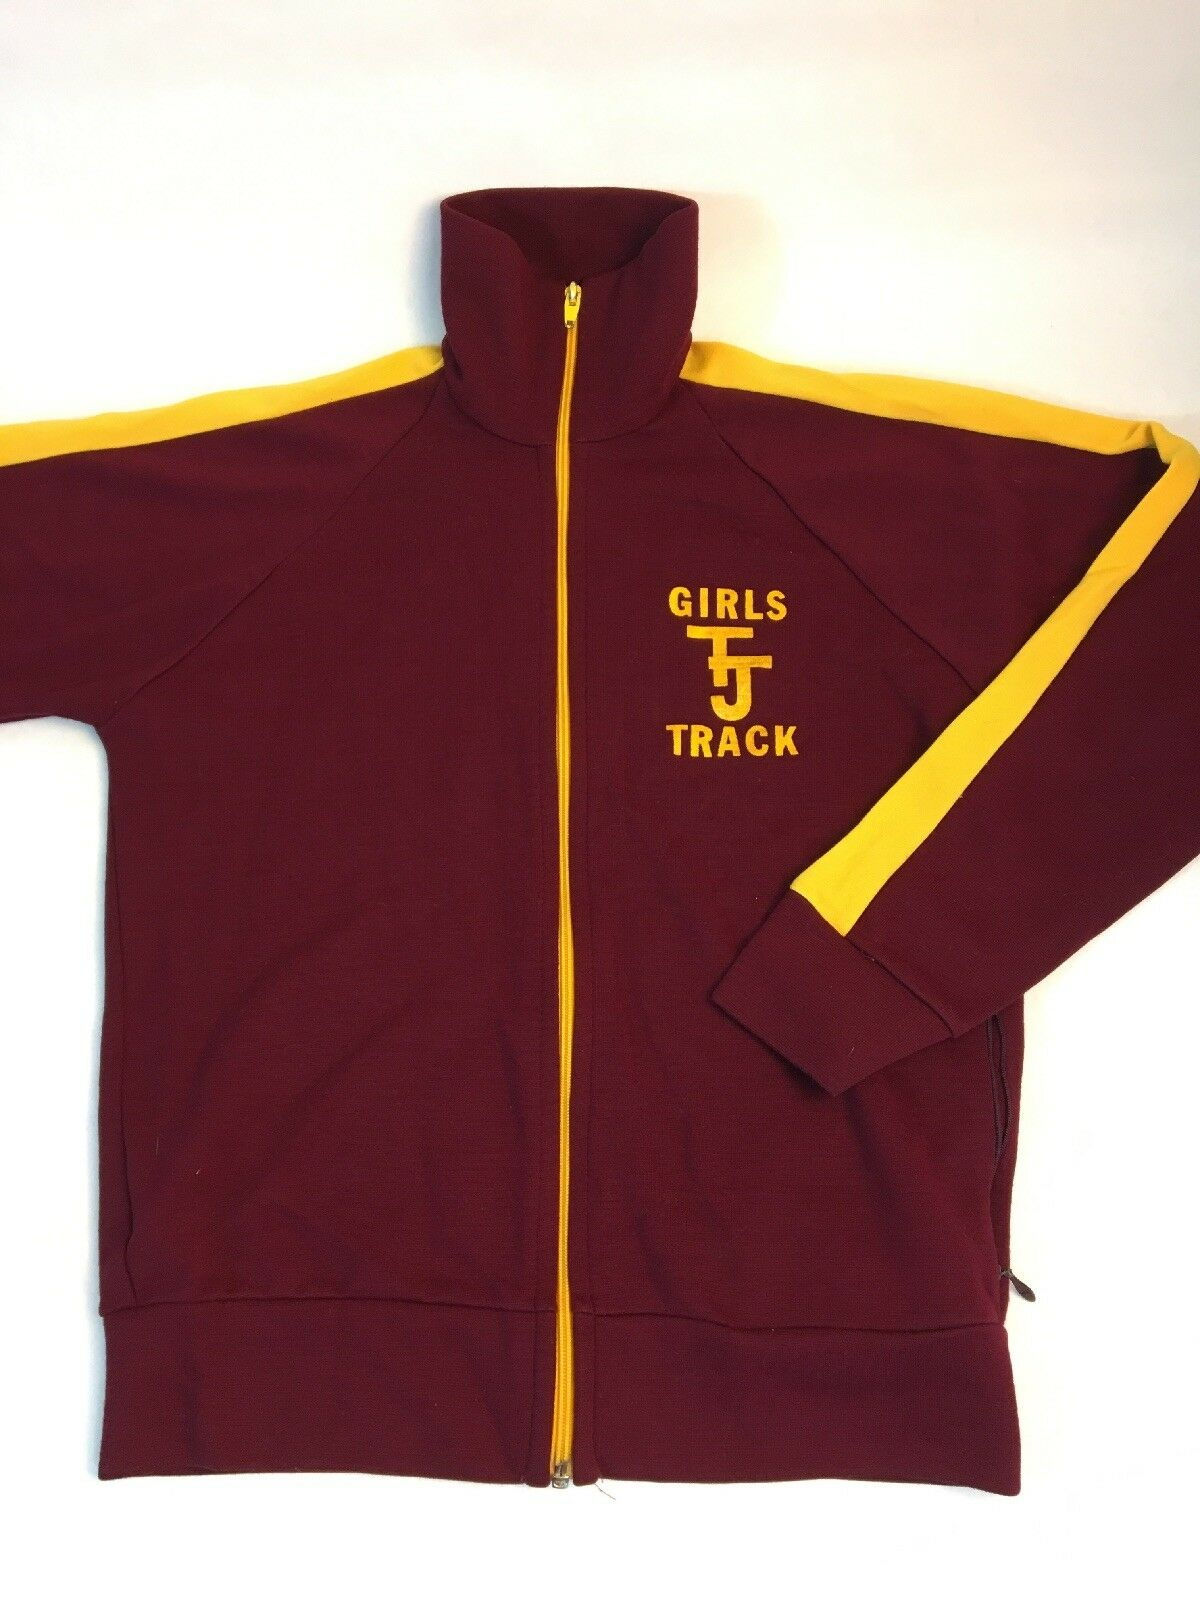 Купить Sport casuals - VTG Thomas Jefferson High School Girls Track Jacket Women's S Zip Sport Casuals